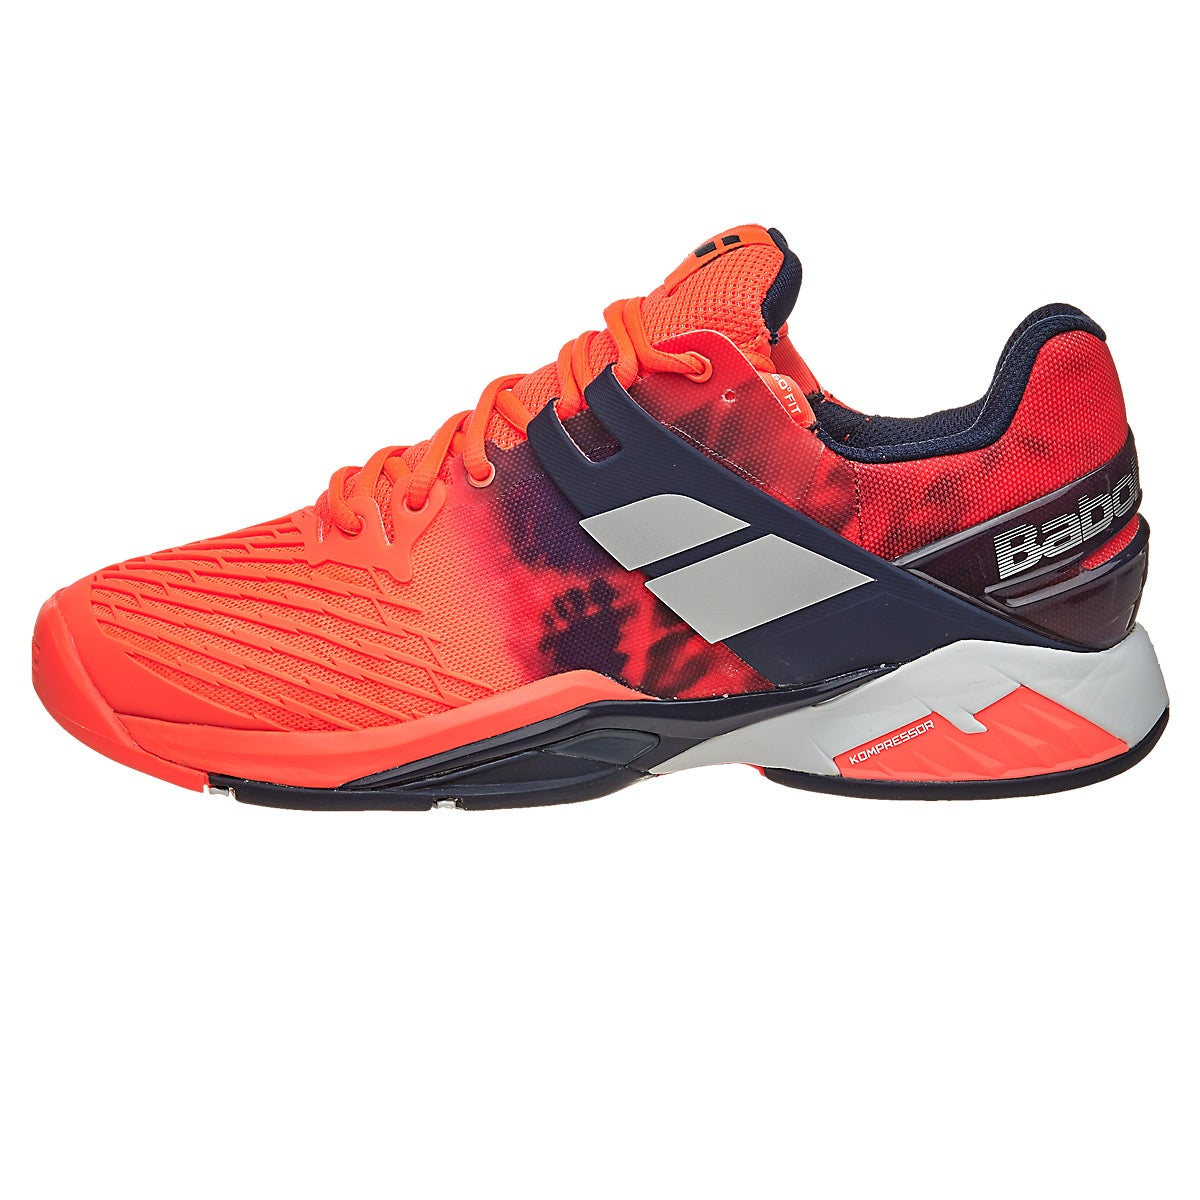 Babolat Tennis Shoes >> Babolat Propulse Fury Fluro Red Men's Shoes 360° View